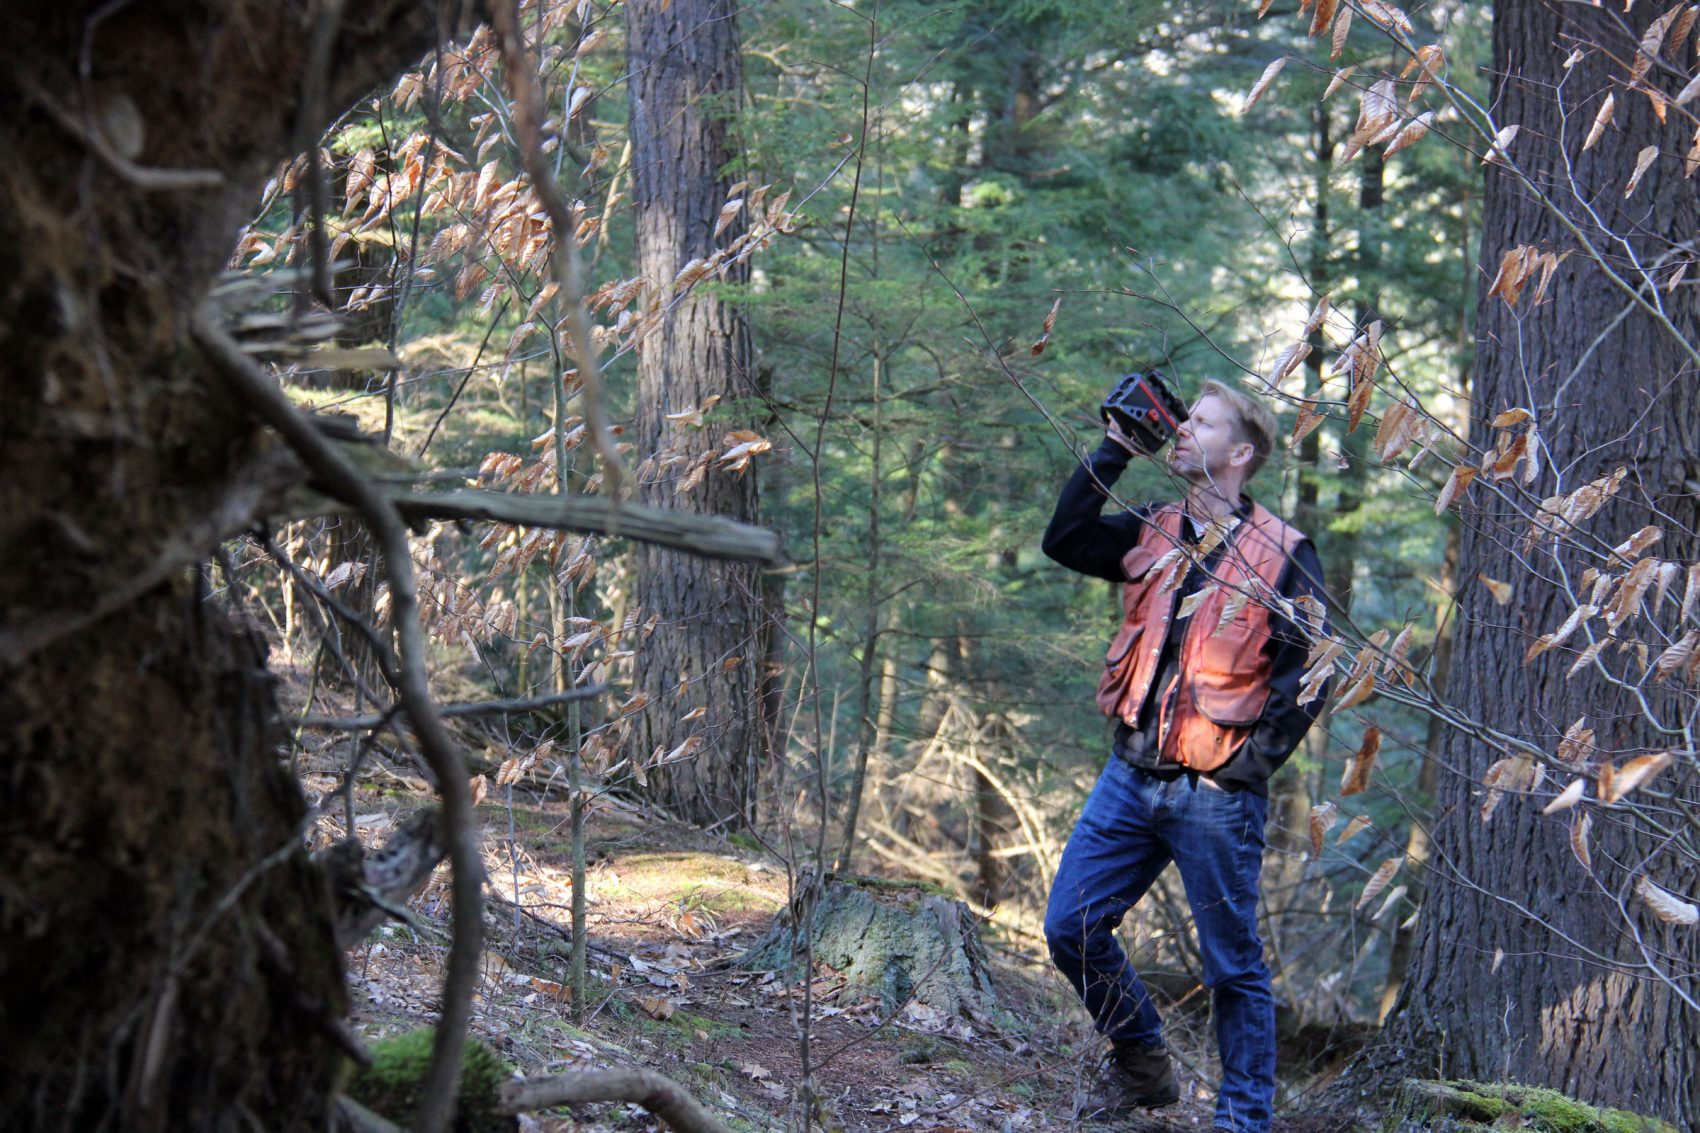 UVM forest ecologist Bill Keeton uses a laser rangefinder to measure the height of a tree in UVM's Jericho Research Forest. (Courtesy Kathleen Masterson/VPR)